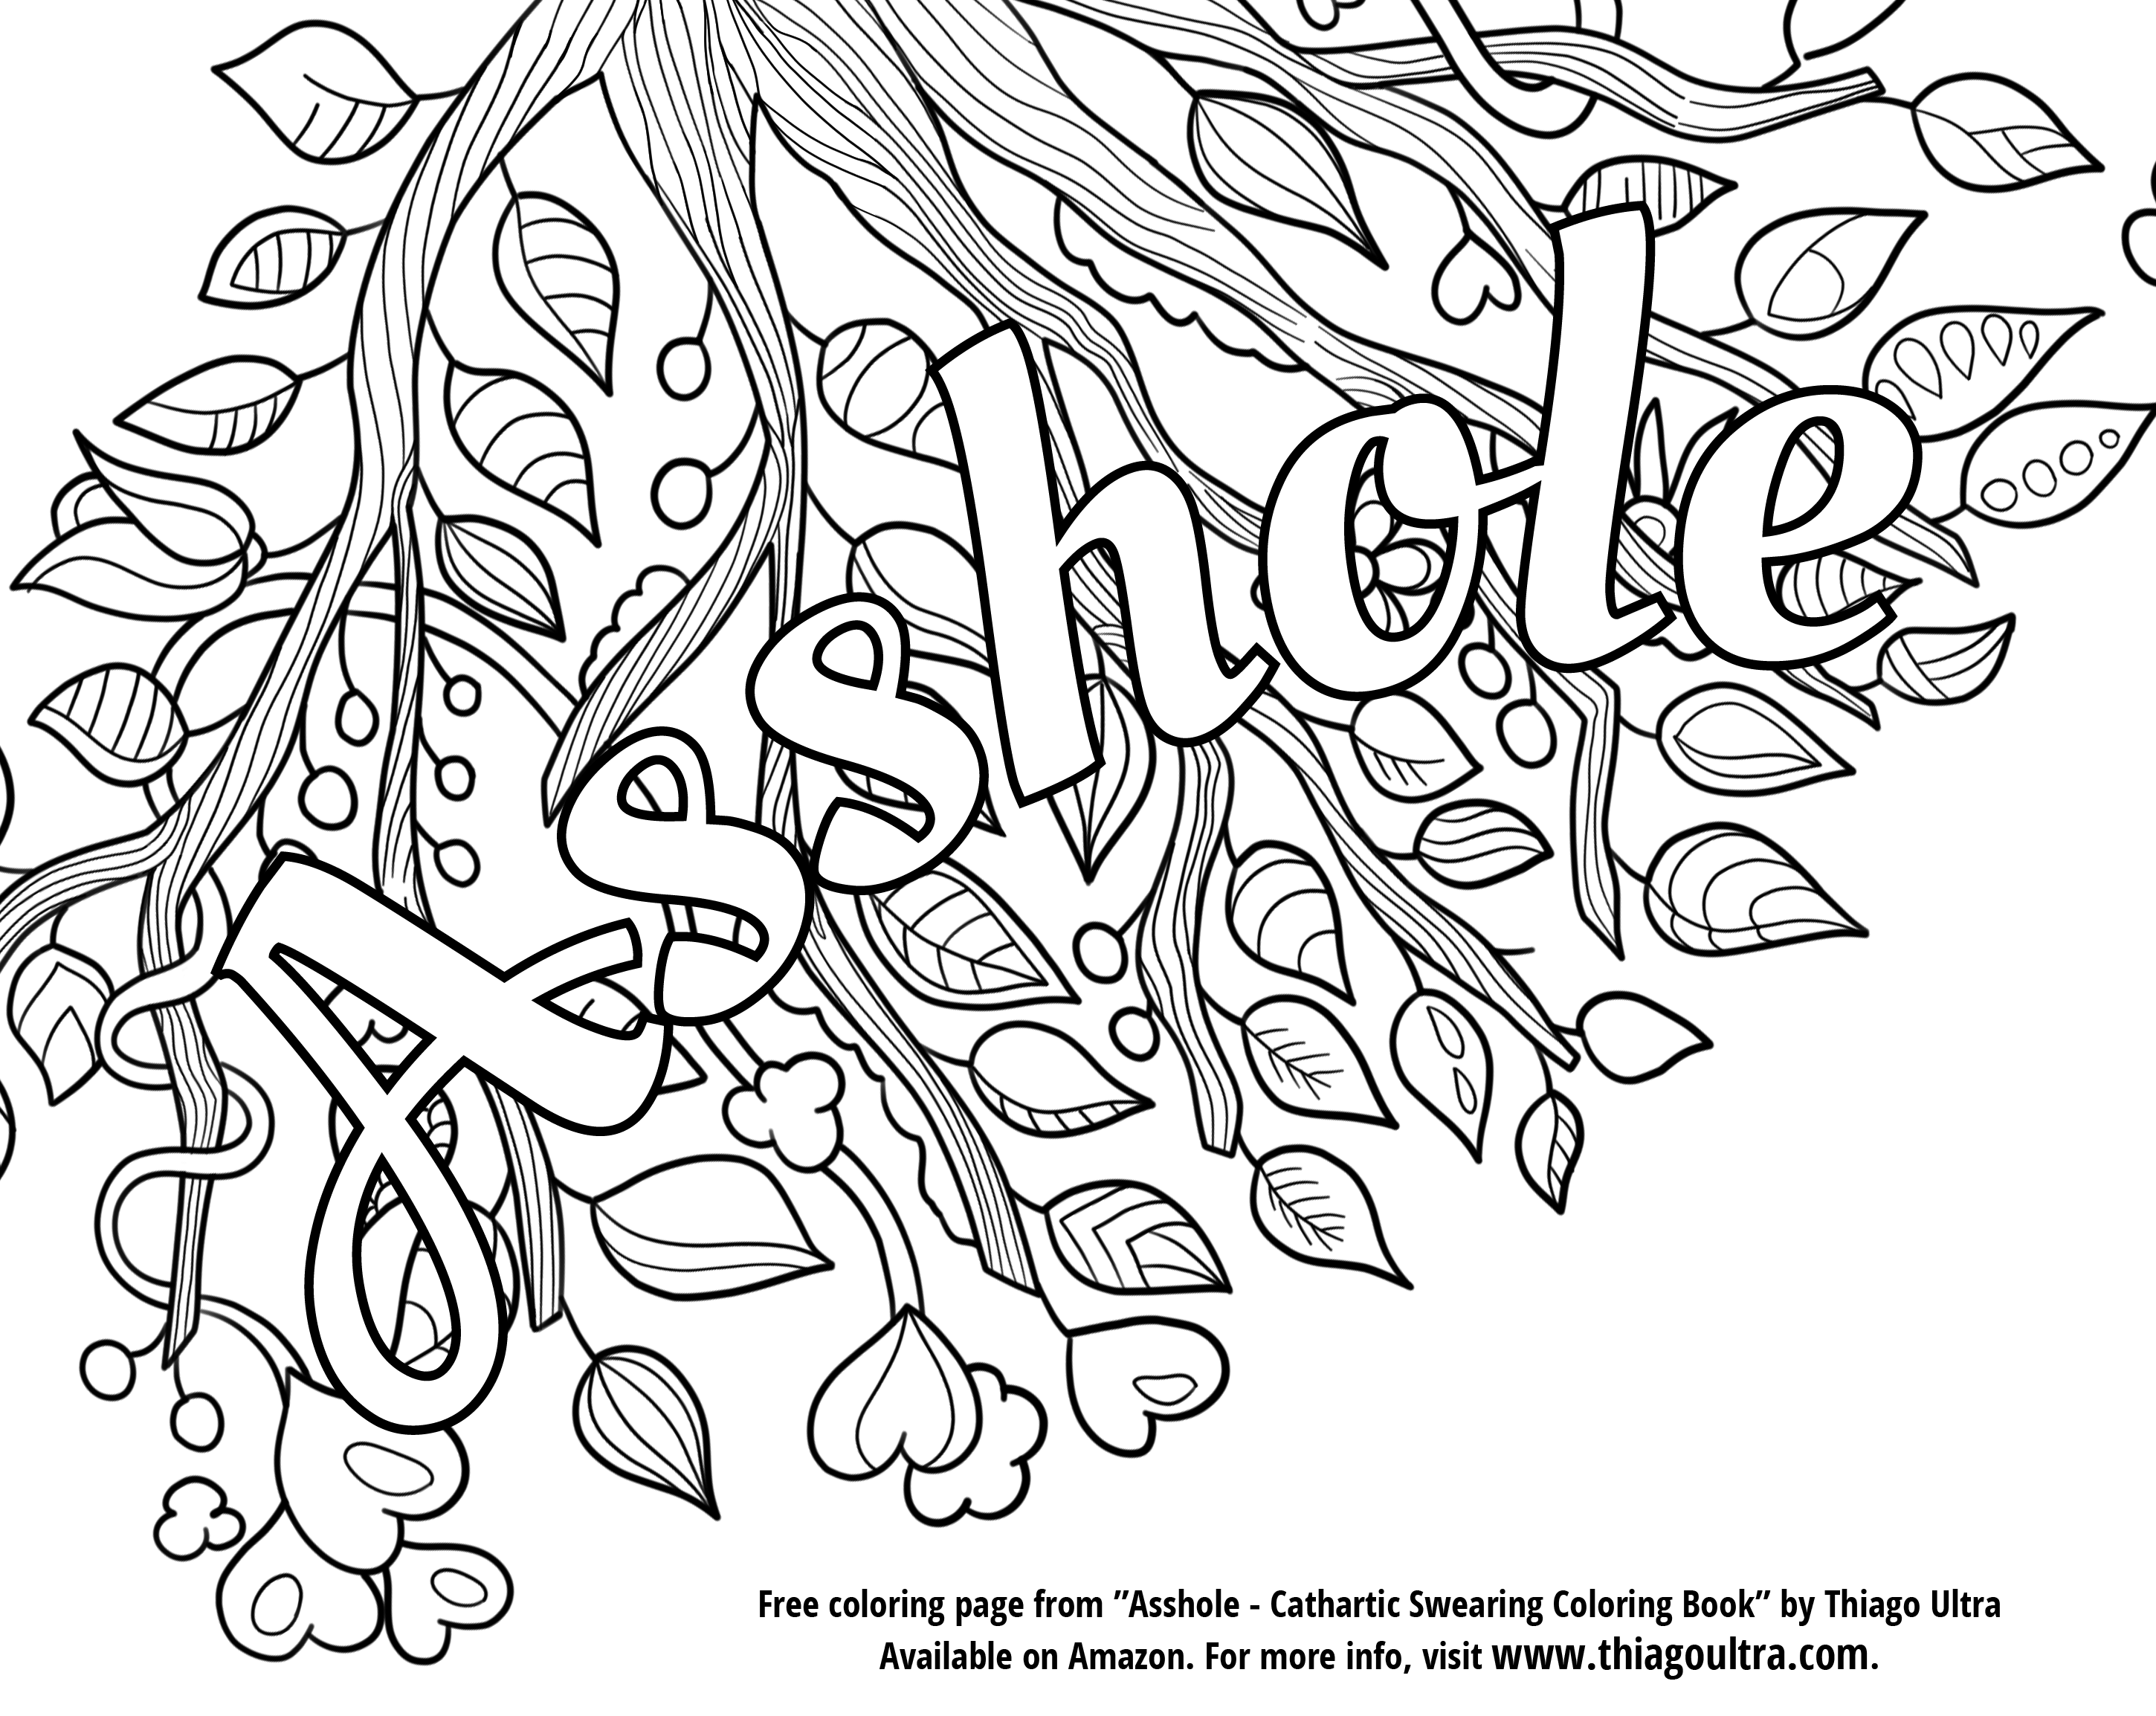 free online coloring pages for adults swear words swear word coloring book 2 free printable coloring pages adults swear words online free for coloring pages